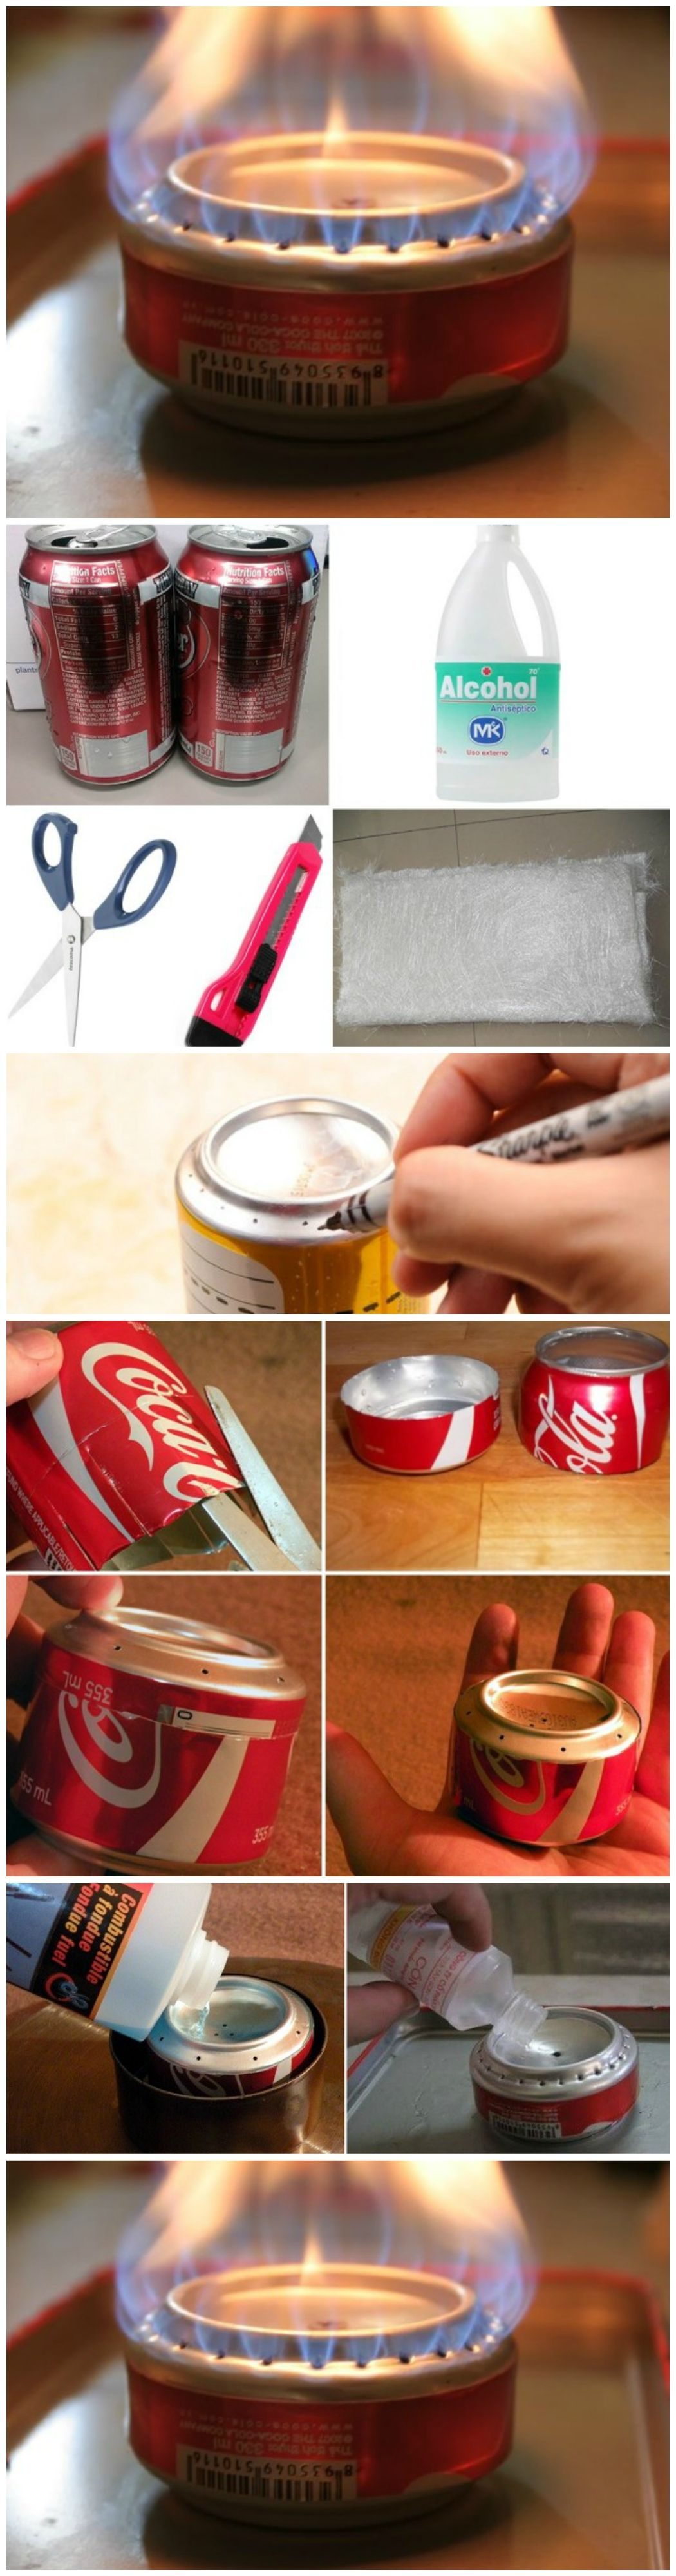 How To Build A Coke Can Stove For Hiking And Camping With Images